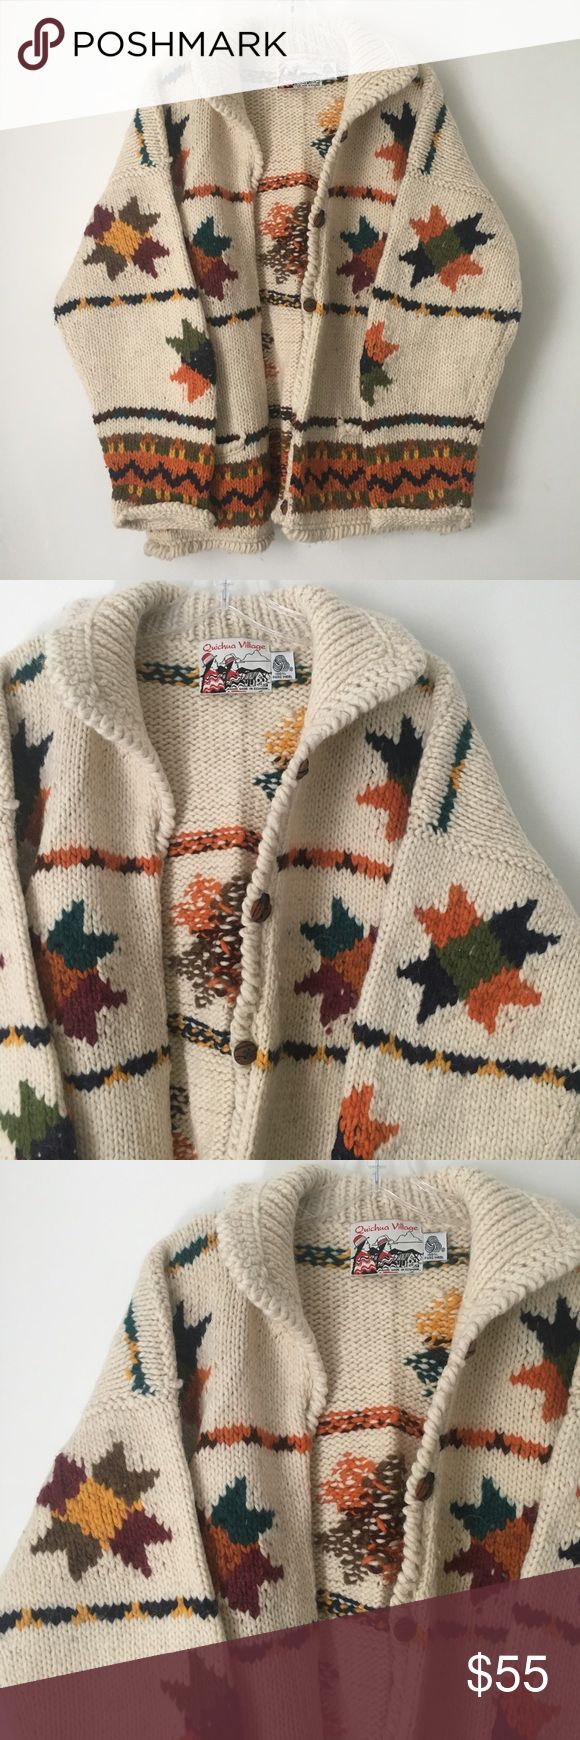 """HEAVY CHUNKY KNIT FALL SWEATER CARDIGAN COAT TOP!! AMAZING Stunning Gorgeous Halloween Thick Chunky Heavy Soft Cozy Warm Cable Knit High Foldover Mock Neck Turtleneck Button Up Down Sweater Cardigan Coat Top Stretch Boho Hippie Gypsy Festival Leaves Leaf Geometric Shape Design Pattern Print Fall Winter    100% wool. Handmade in Ecuador.    Brand new    Never used    NO flaws    One Size Fits Most. Could work for XS, Small, Medium, Large or XL depending on desired fit.    Chest - 23.5"""" across…"""